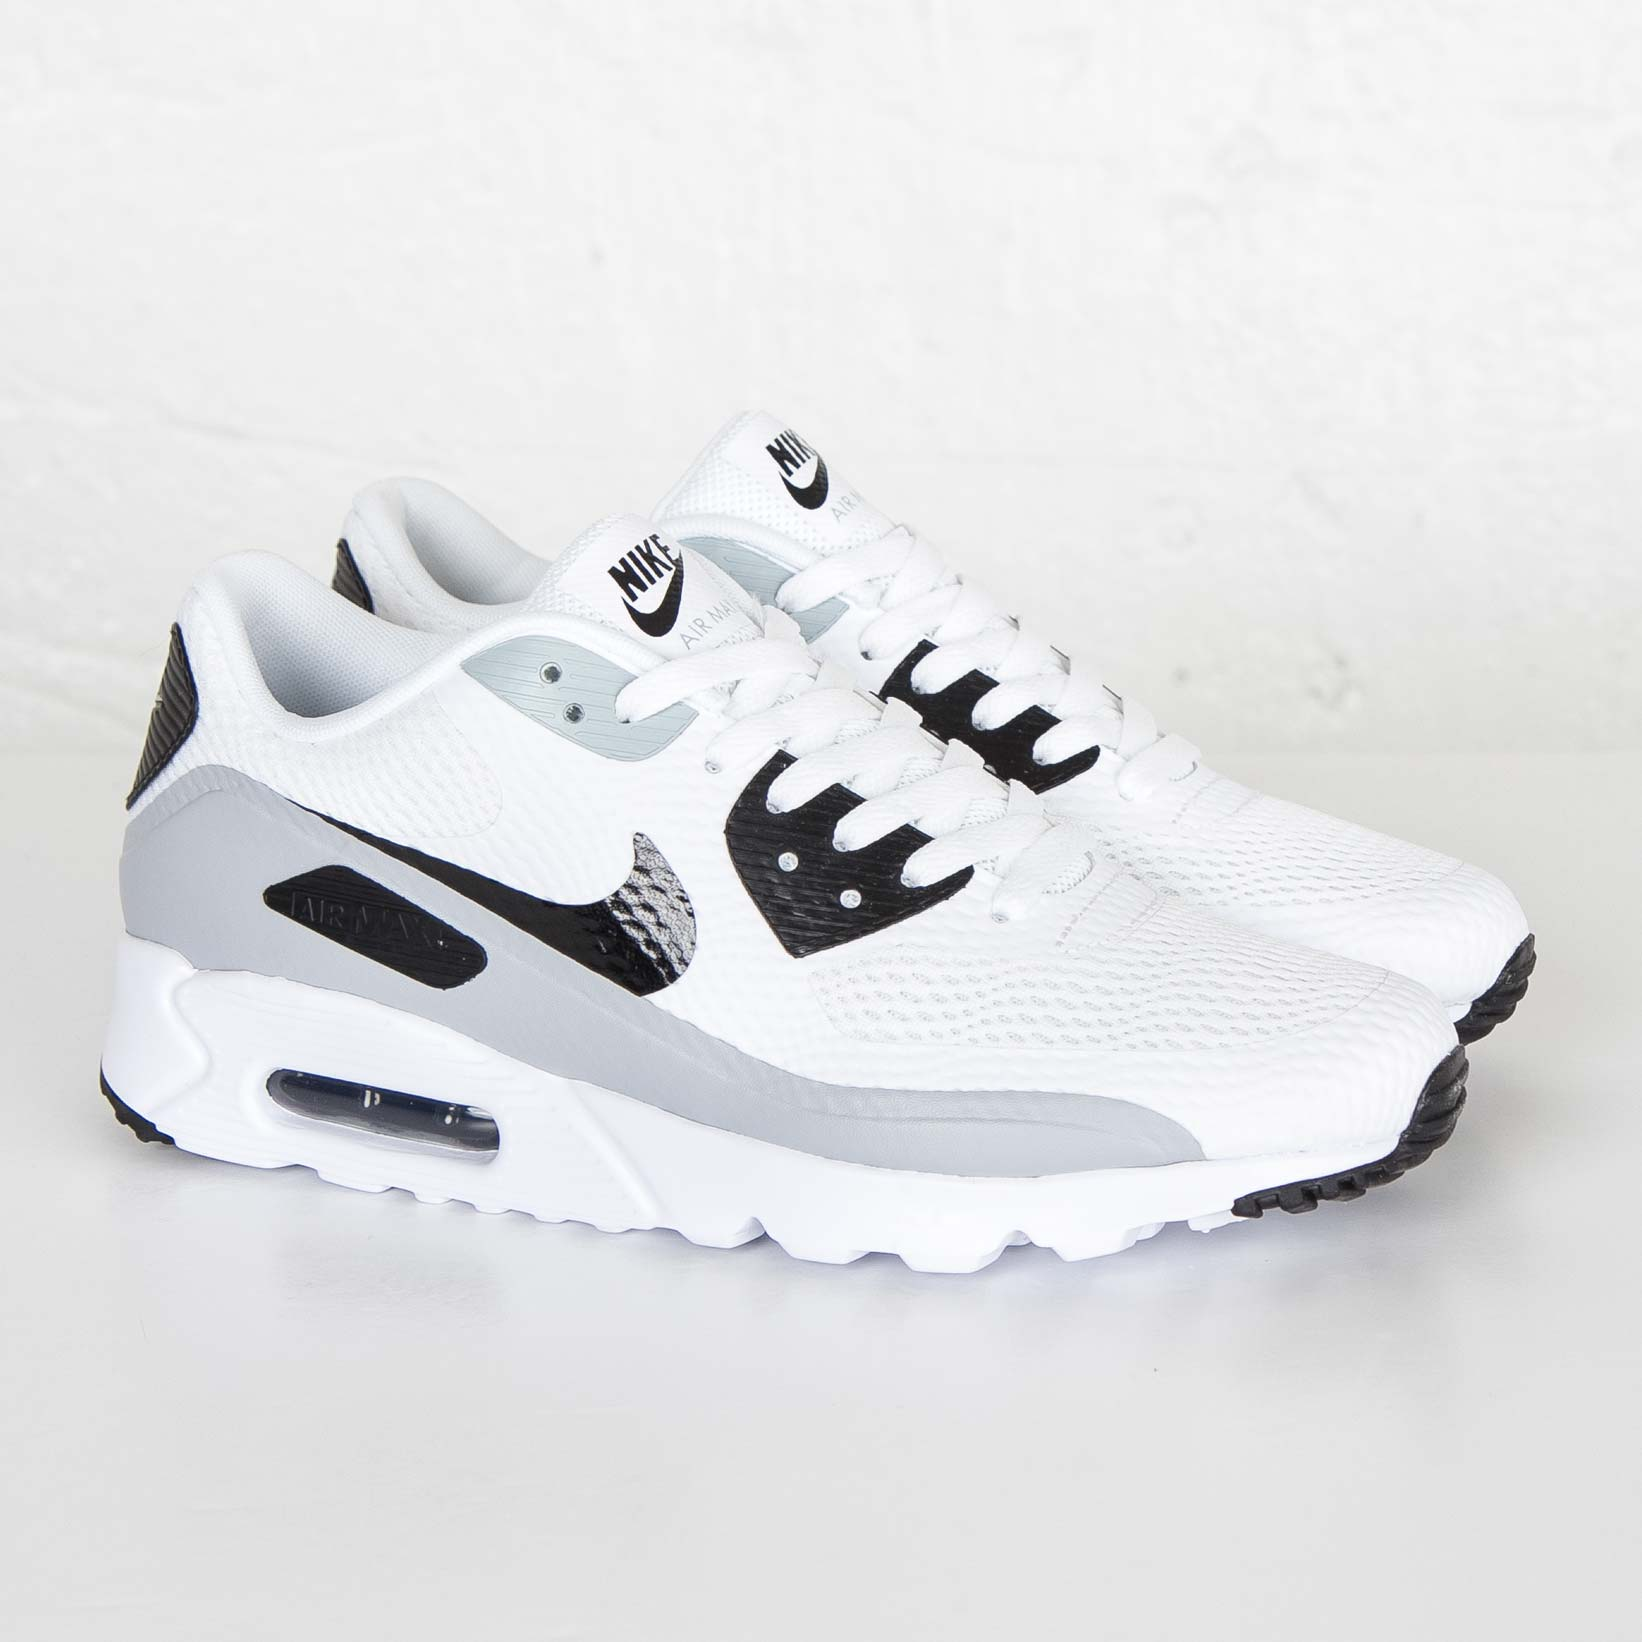 reputable site e60a7 23a7b Nike Air Max 90 Essential